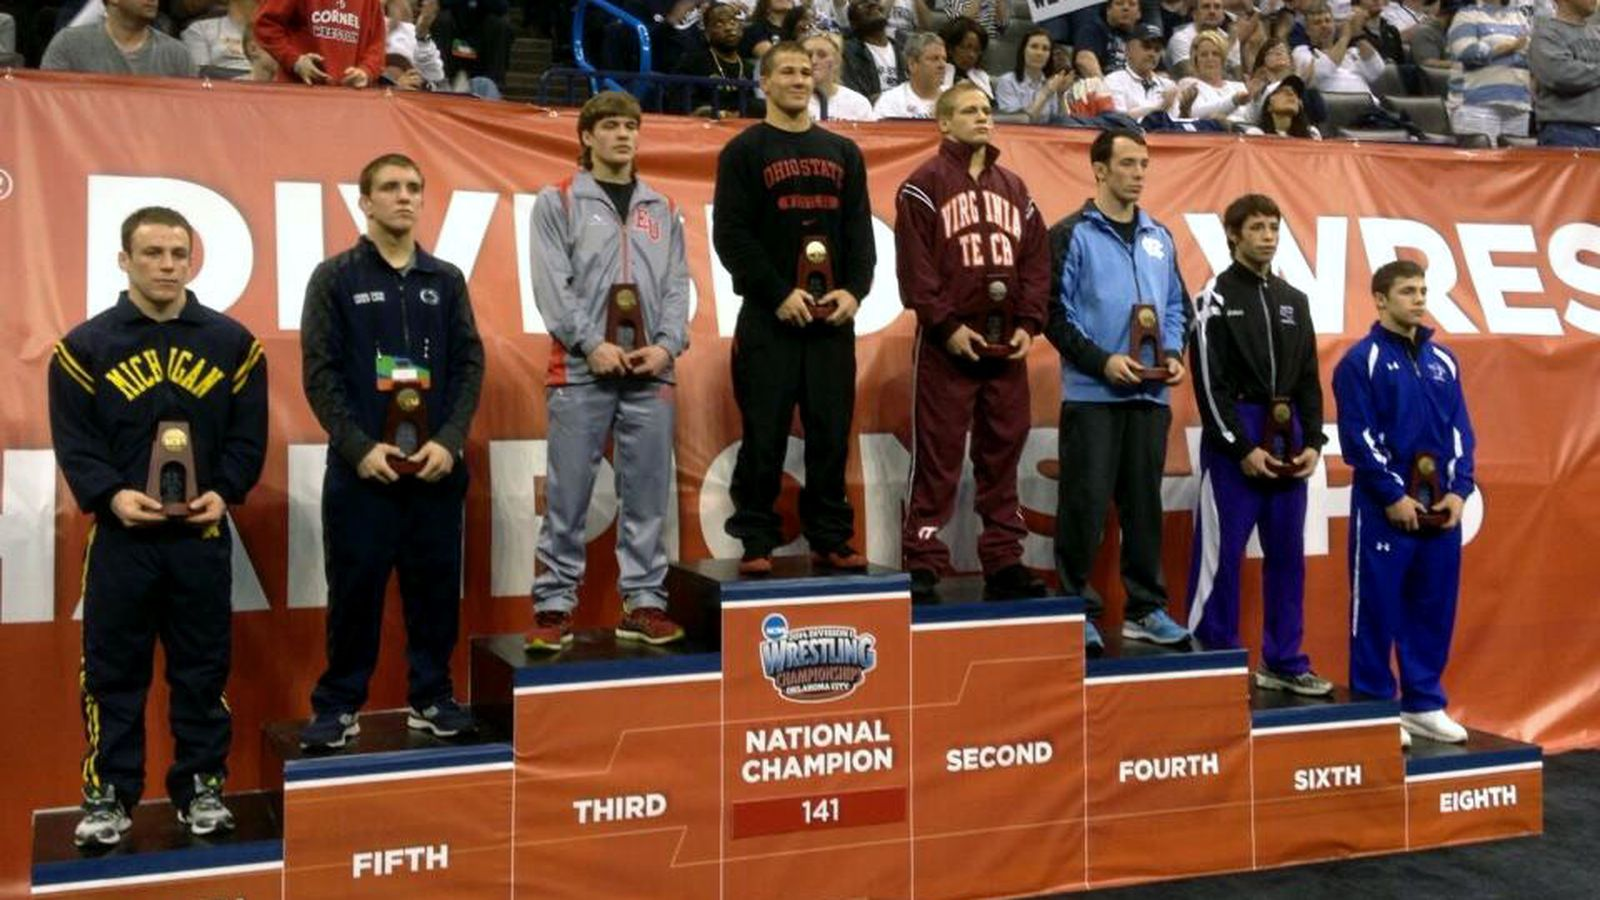 buy online 1f768 3b7d4 2014 NCAA Wrestling Championships results  Ohio State s Logan Stieber  becomes program s 1st 3-time national champ - Land-Grant Holy Land